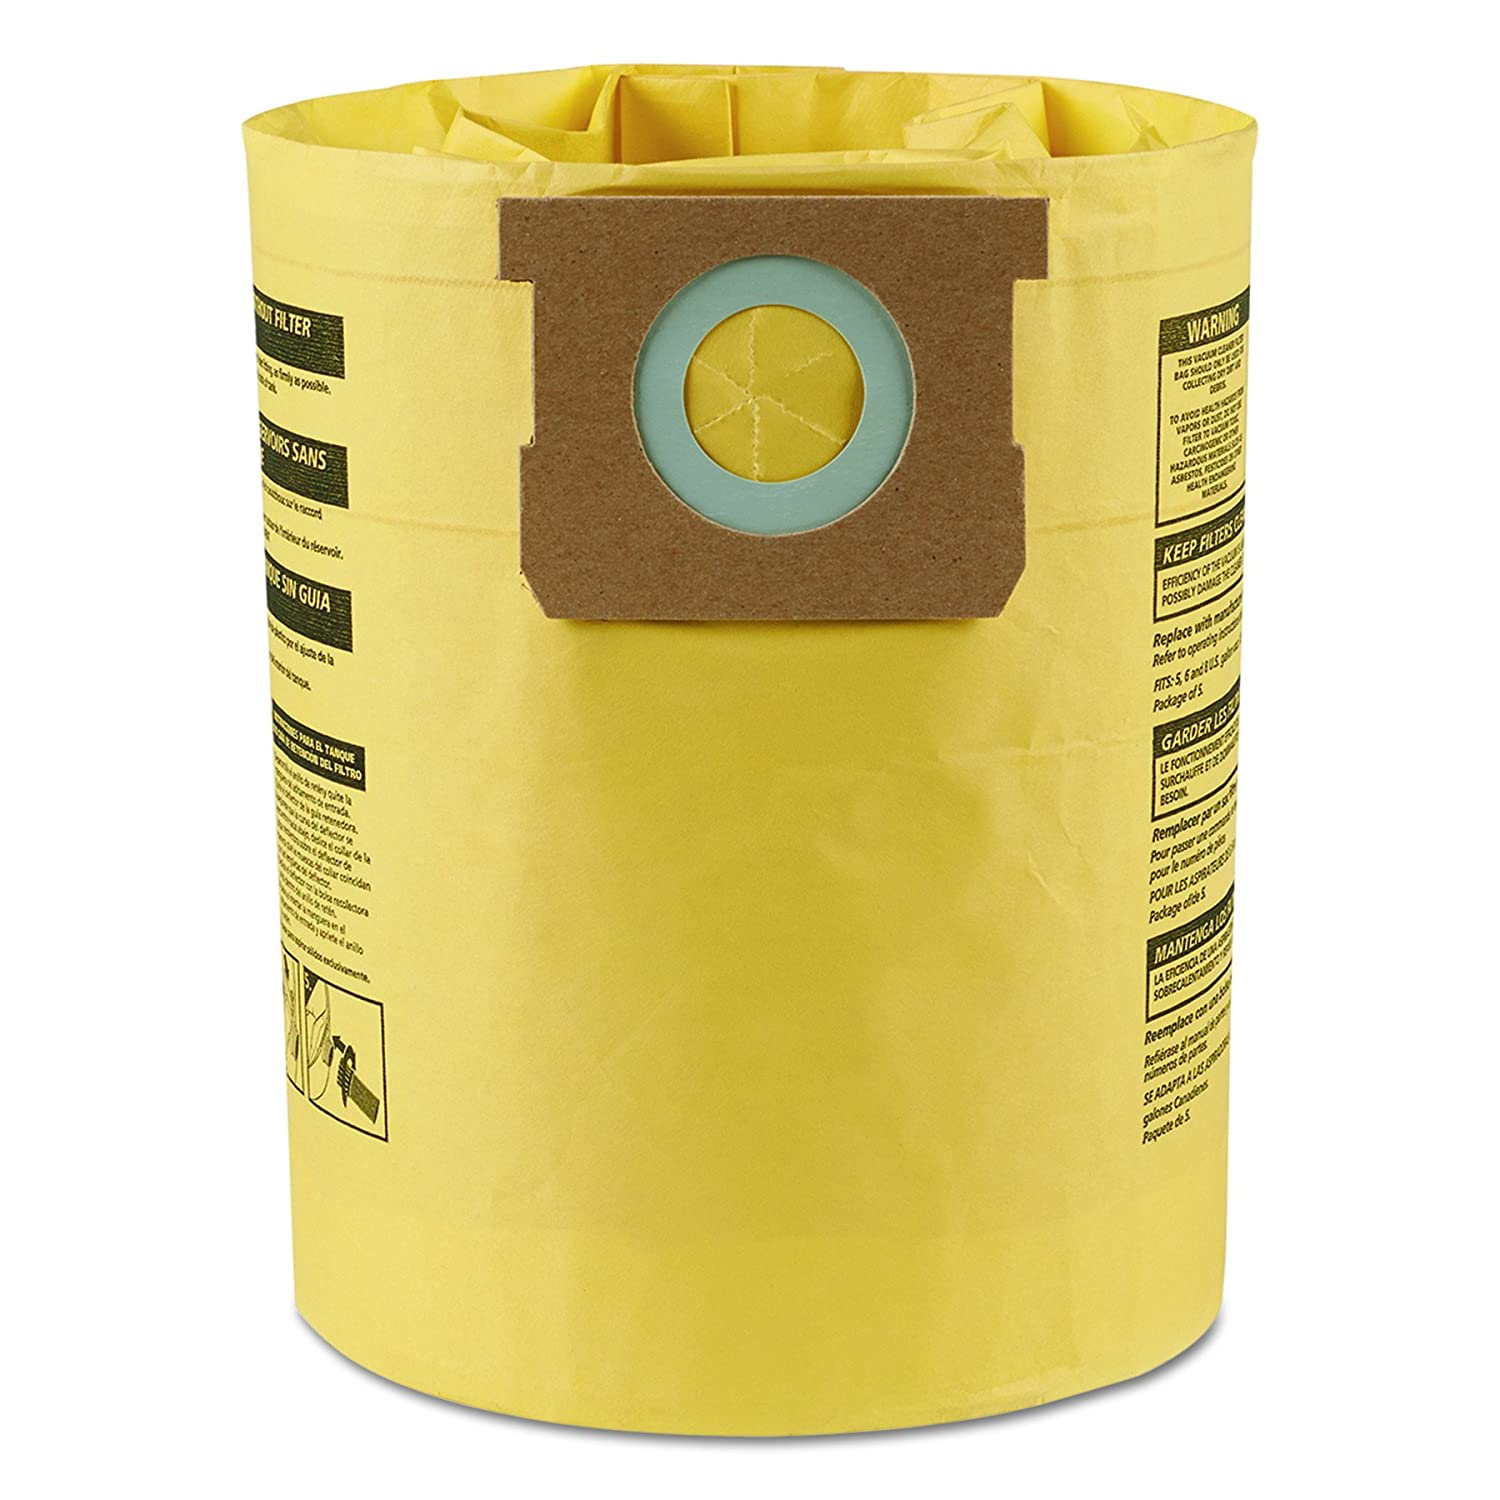 B00002N9E1 Shop-Vac 9067100 Genuine Type H 5-to-8-Gallon High-Efficiency Disposable Collection Filter Bag 2-Pack 81LtqZWX32L